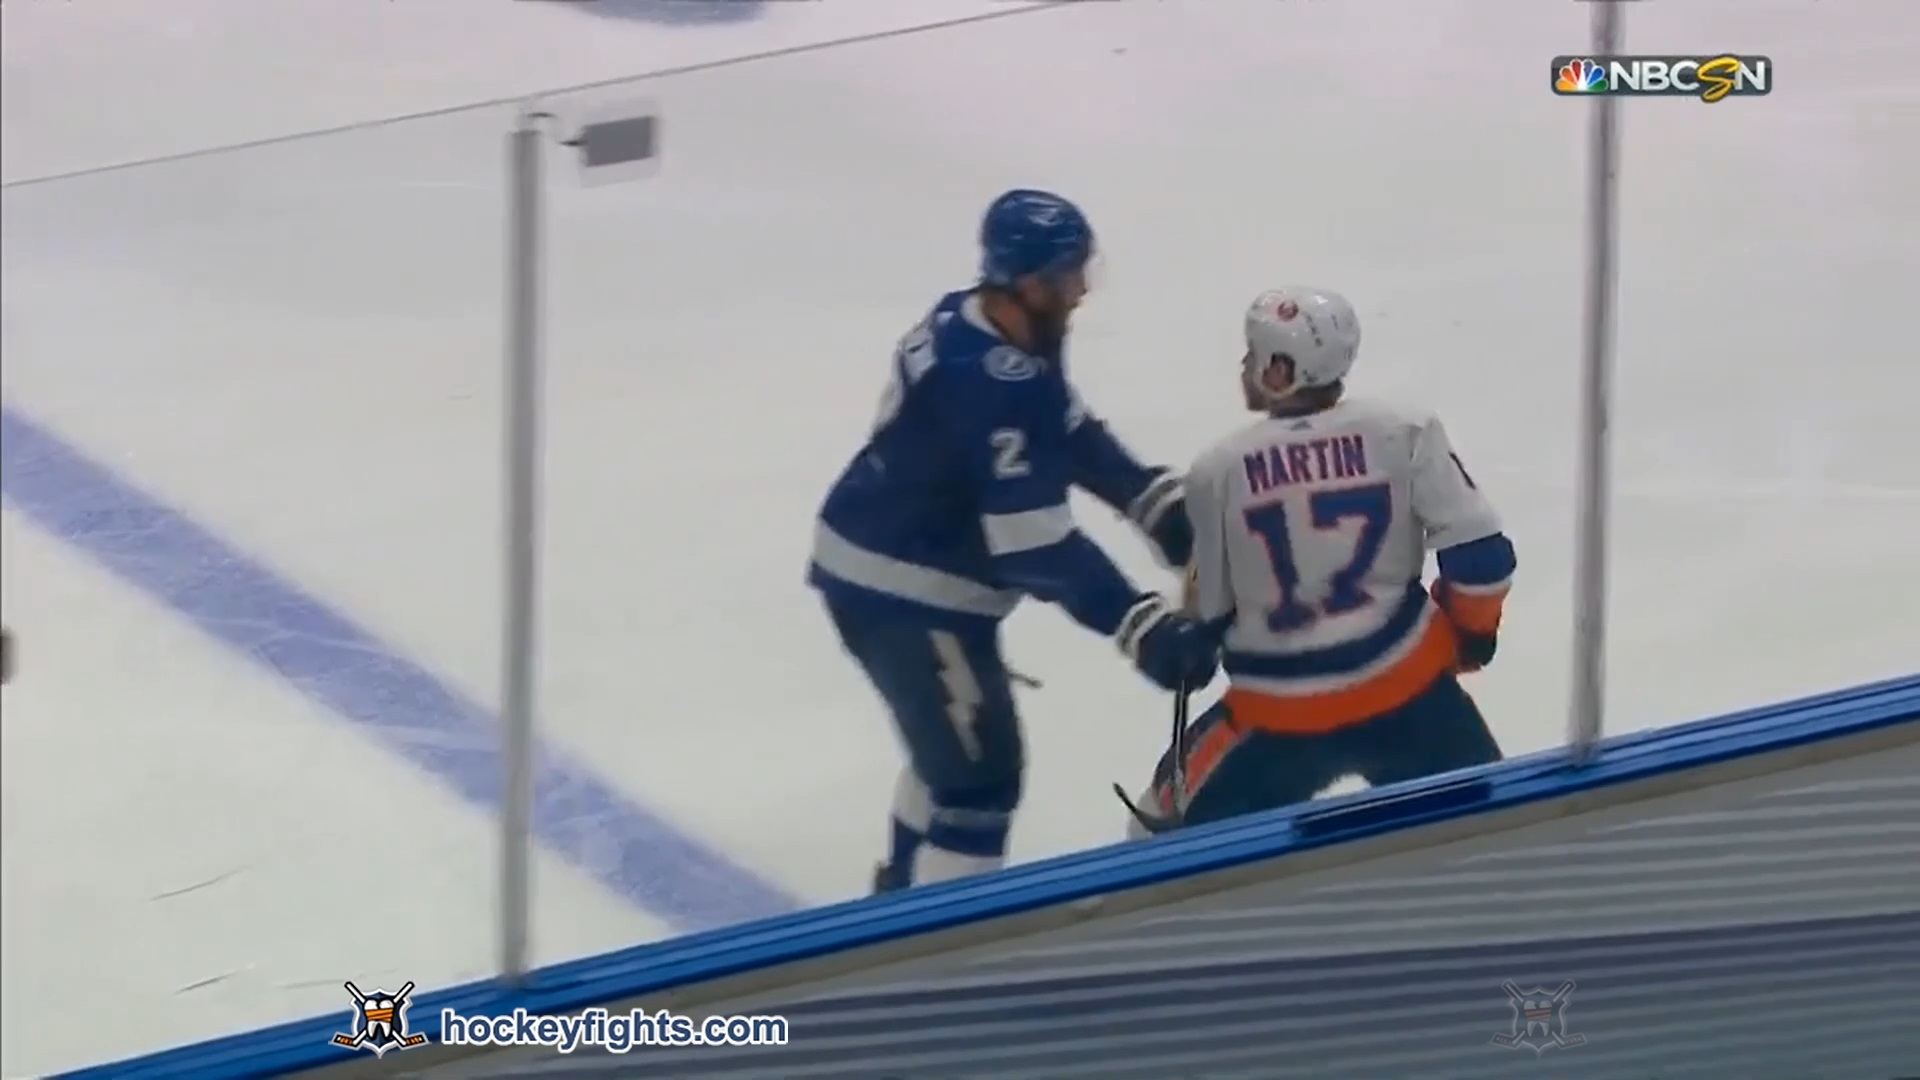 Luke Schenn vs. Matt Martin